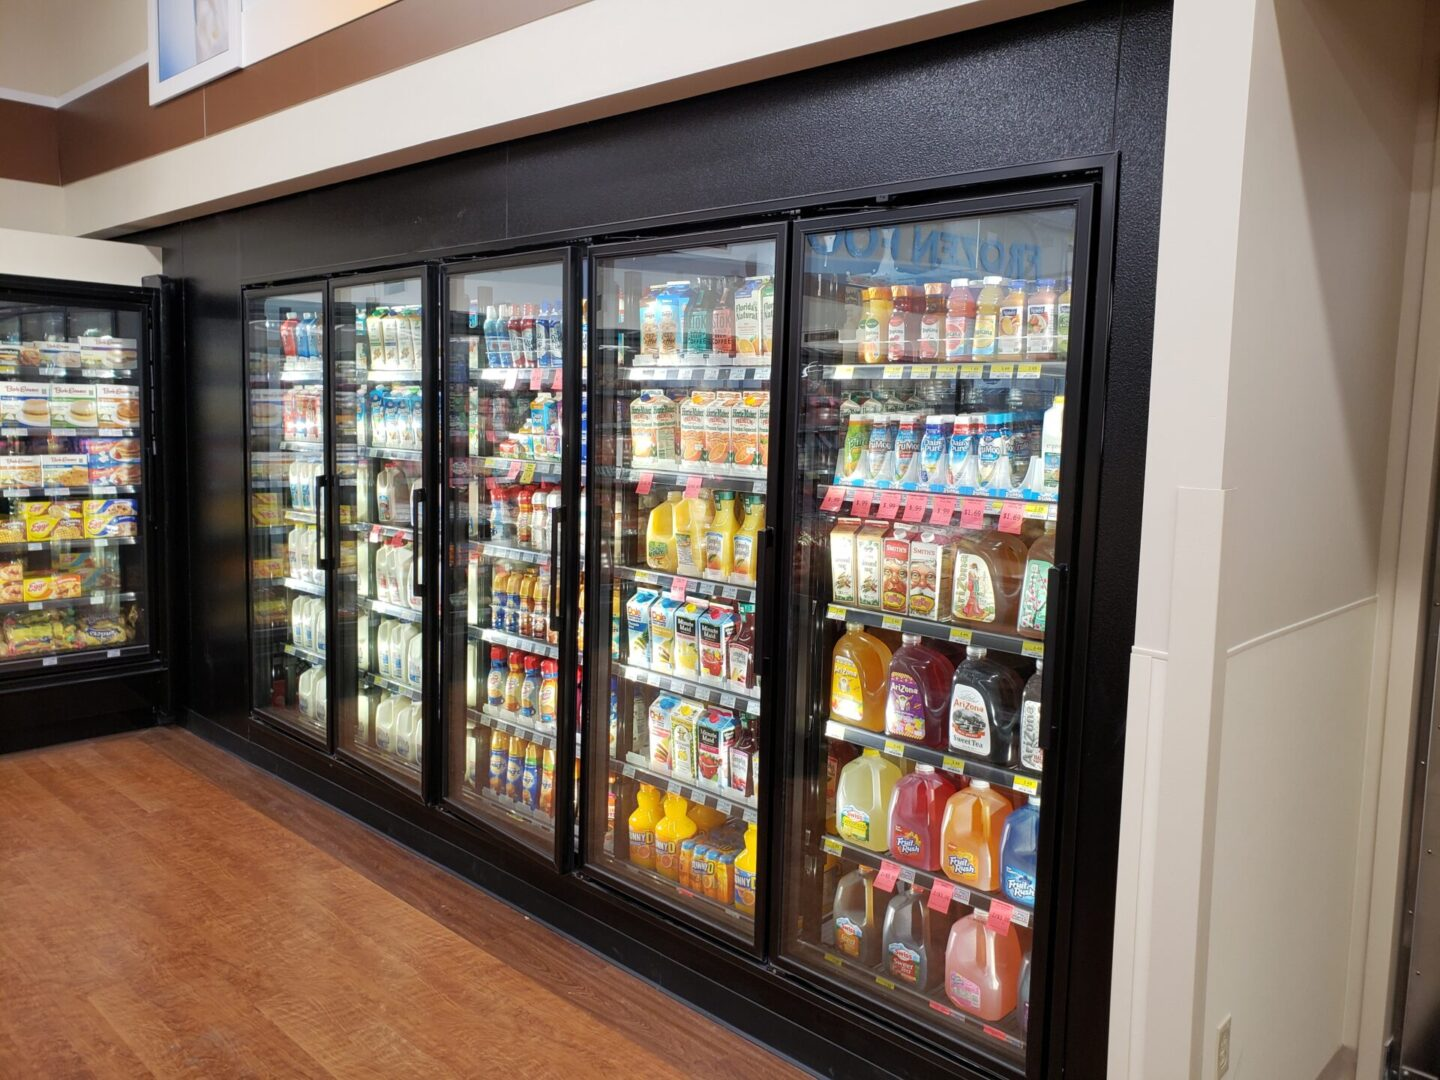 Anthony 401W Cooler Doors & Frames with Optimax Lighting